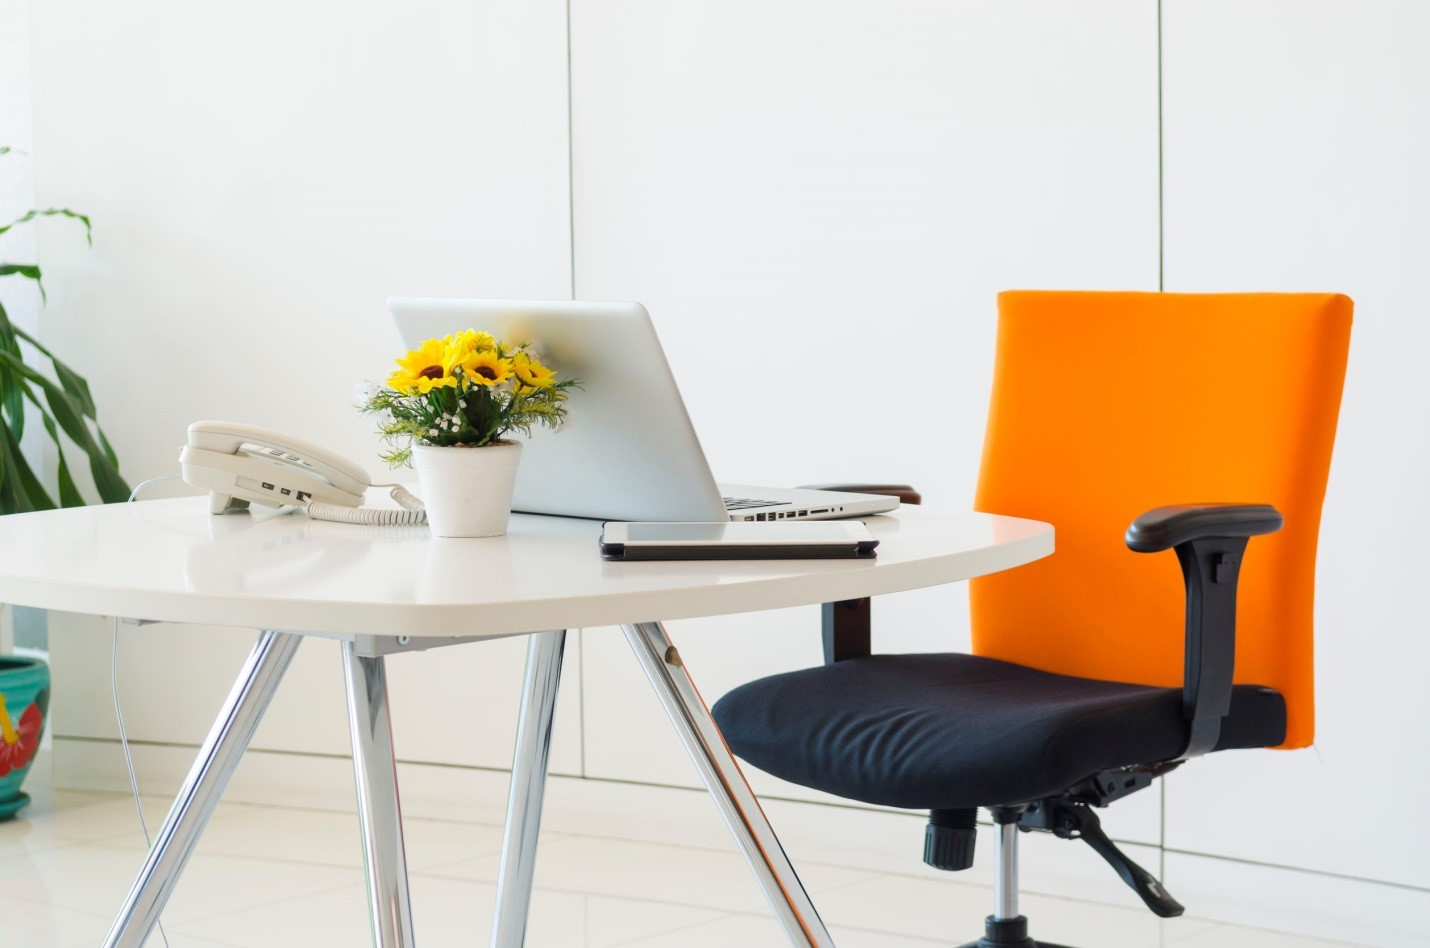 Redesigning Your Home Office This Fall - These Tips Will Help Create an Organized and Inspiring Space in No Time